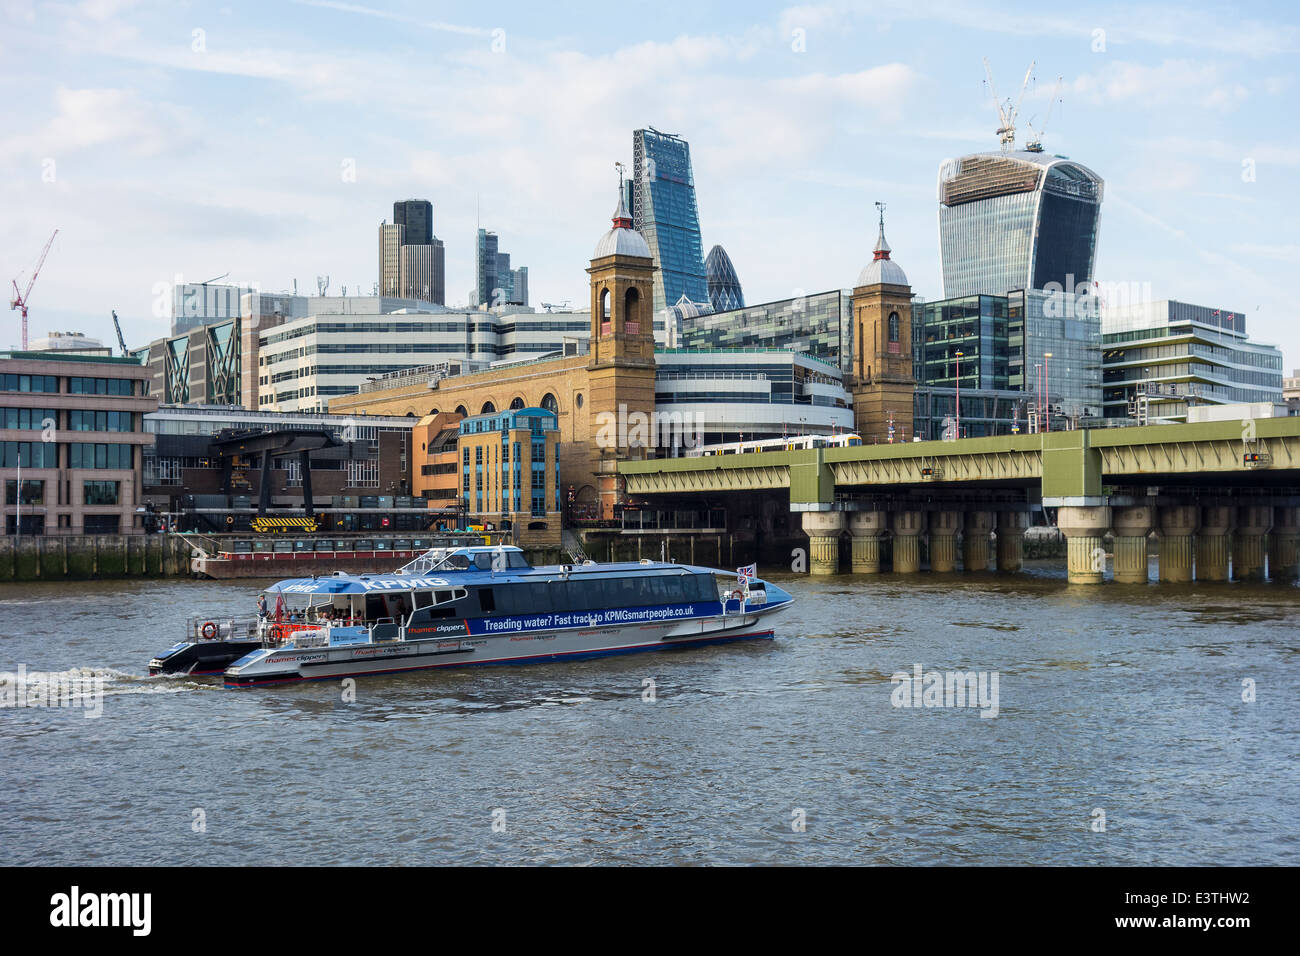 River Thames The City Cannon Street Station River Tour London - Stock Image